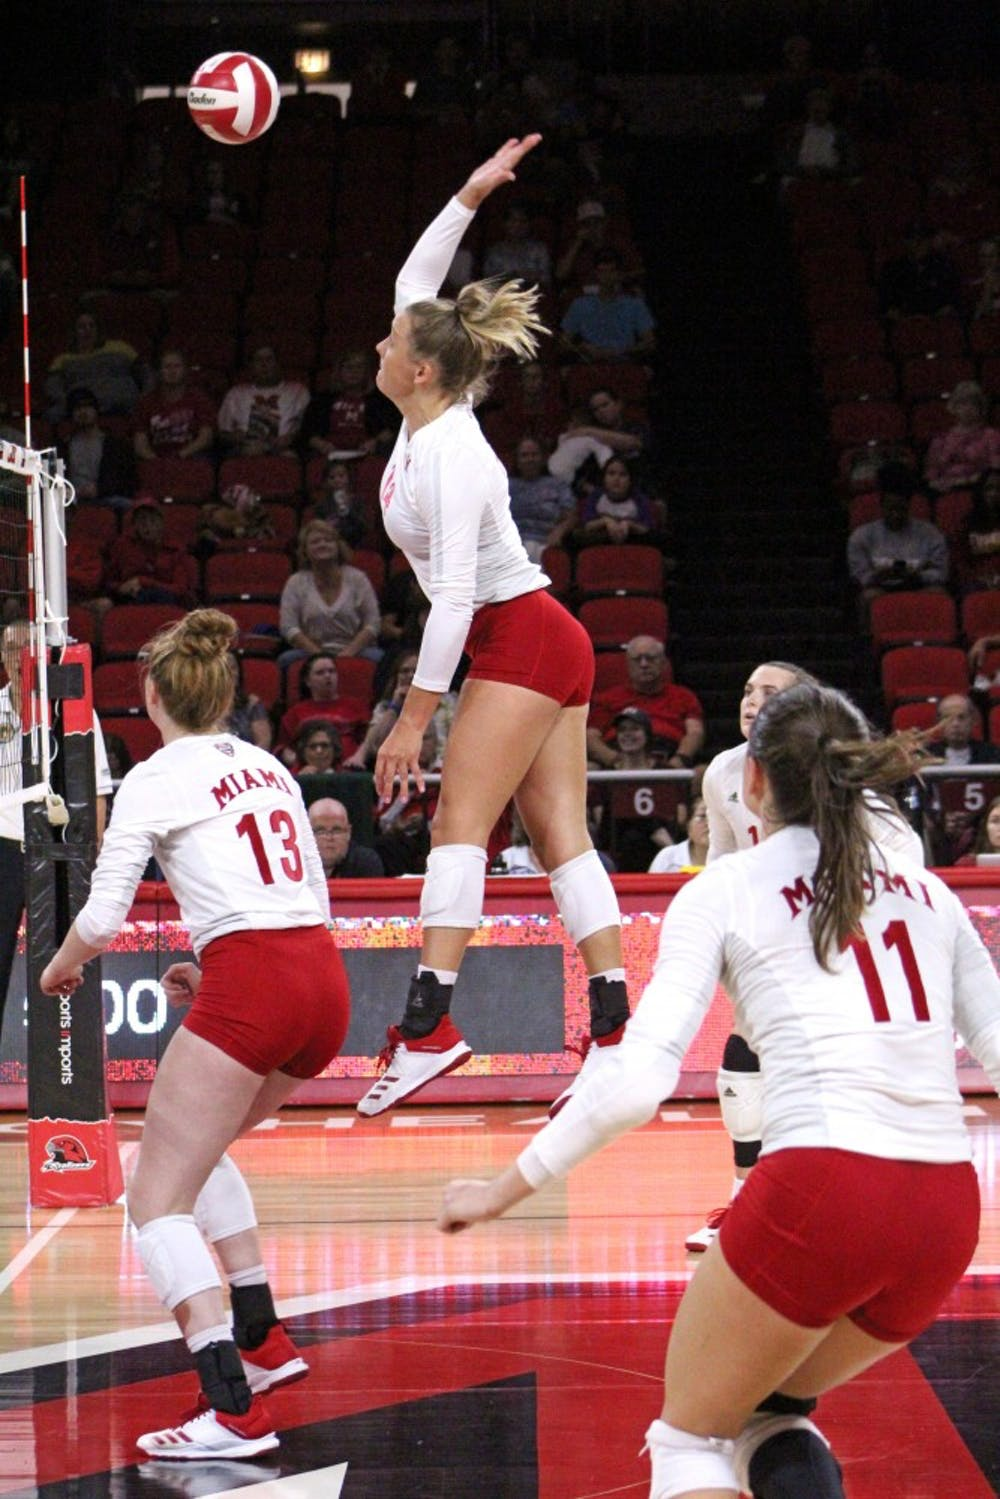 <p>Junior right side Sarah Wojick hits a ball last weekend. In two games, she put down 11 kills and added six digs.</p><p><br/><br/><br/><br/><br/><br/></p>